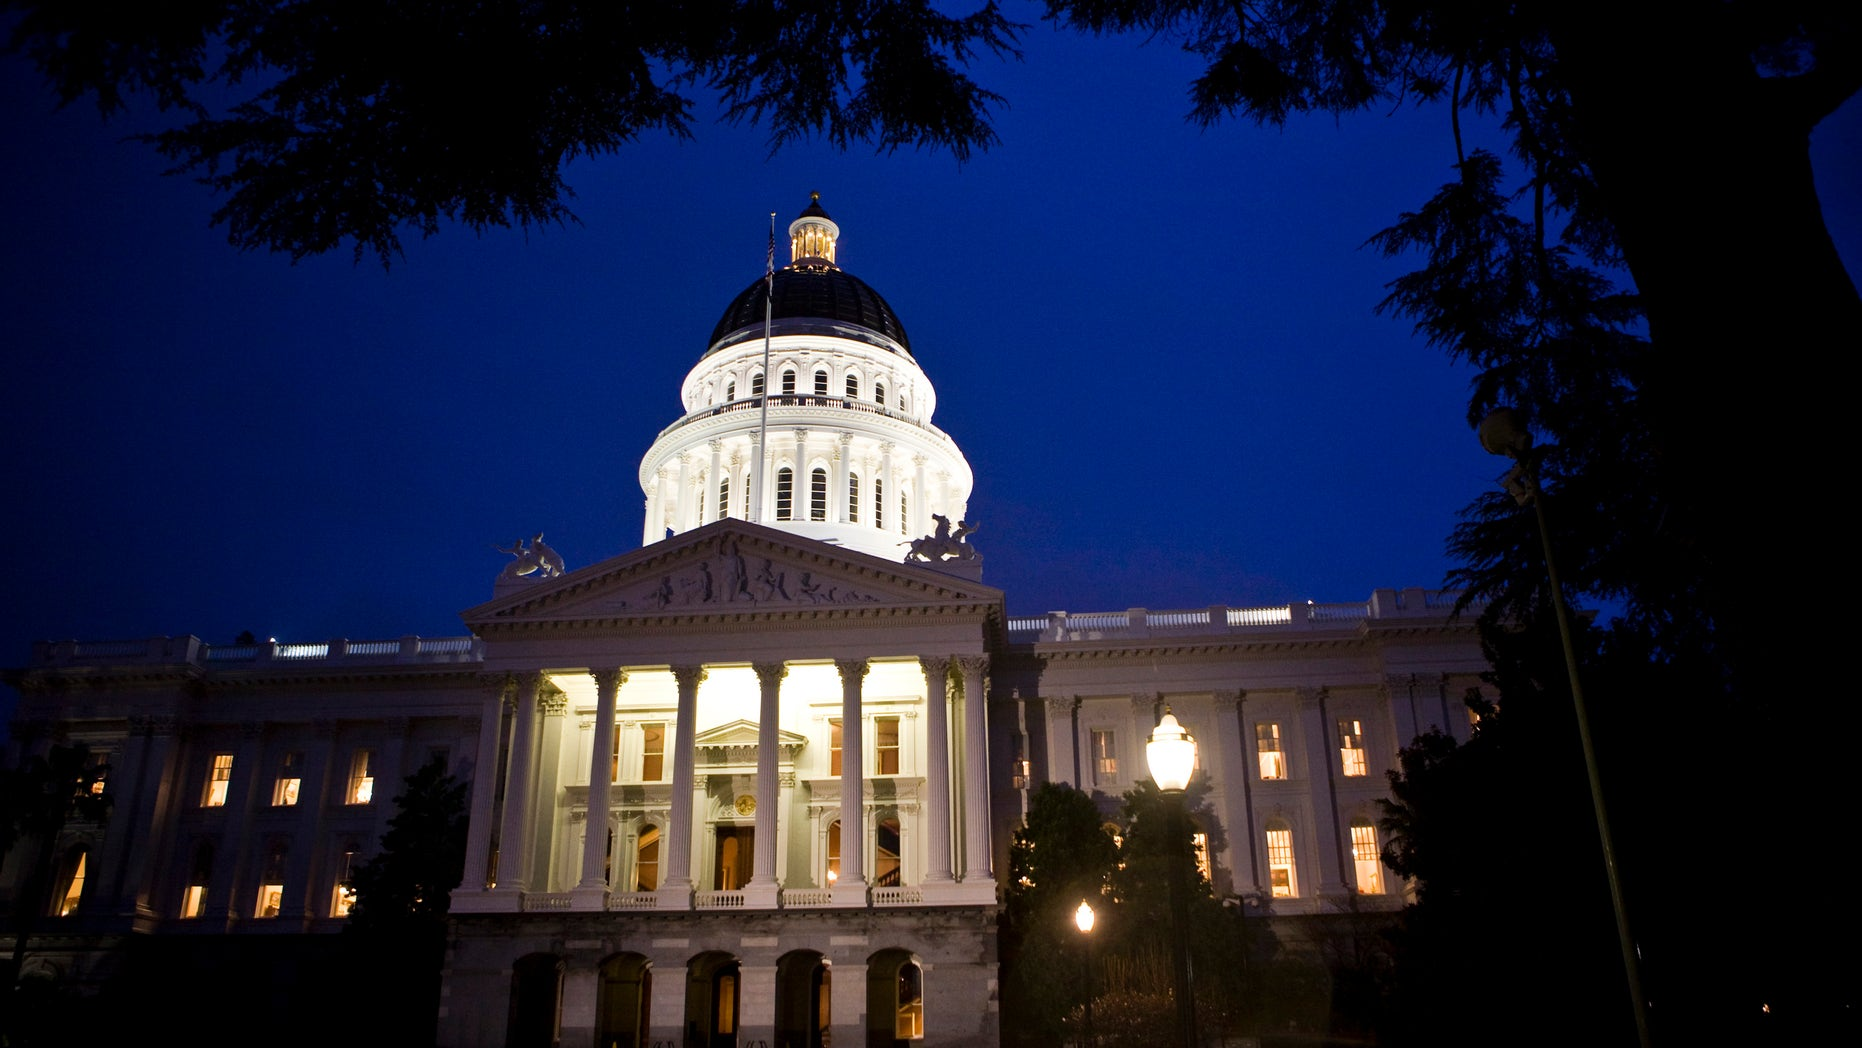 The exterior shot of the State Capitol in Sacramento, California.